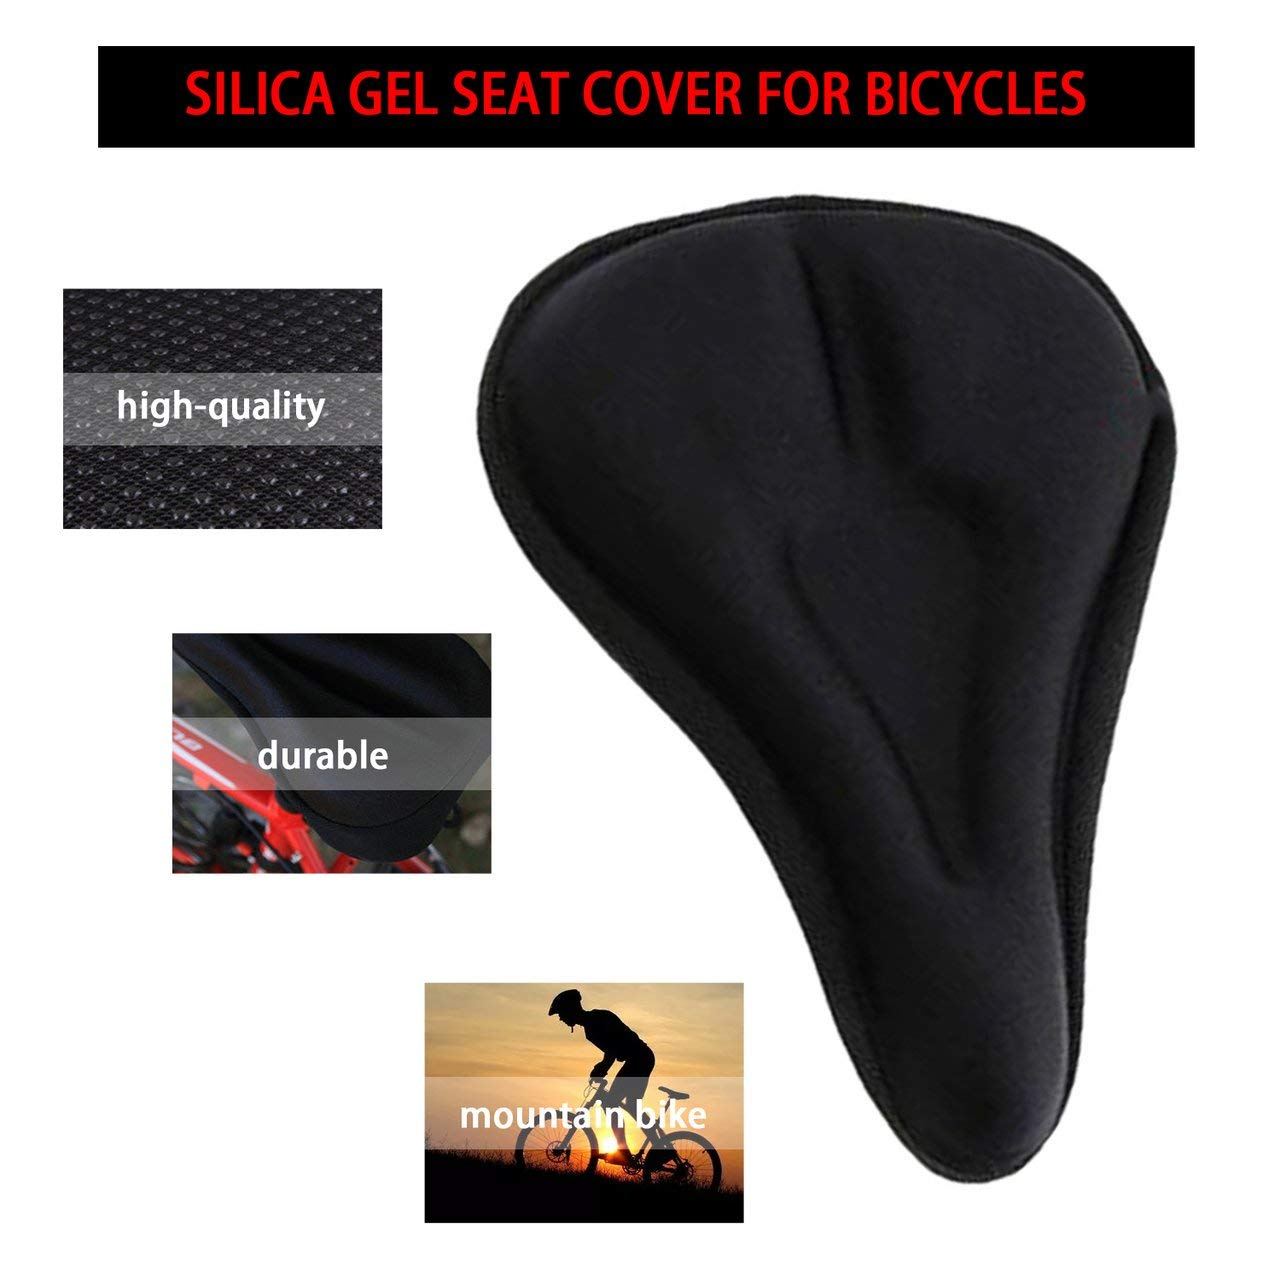 Black Jasnyfall Silicone Gel Thick Soft Bicycle Bike Cycling Saddle Seat Cover Cushion Pad